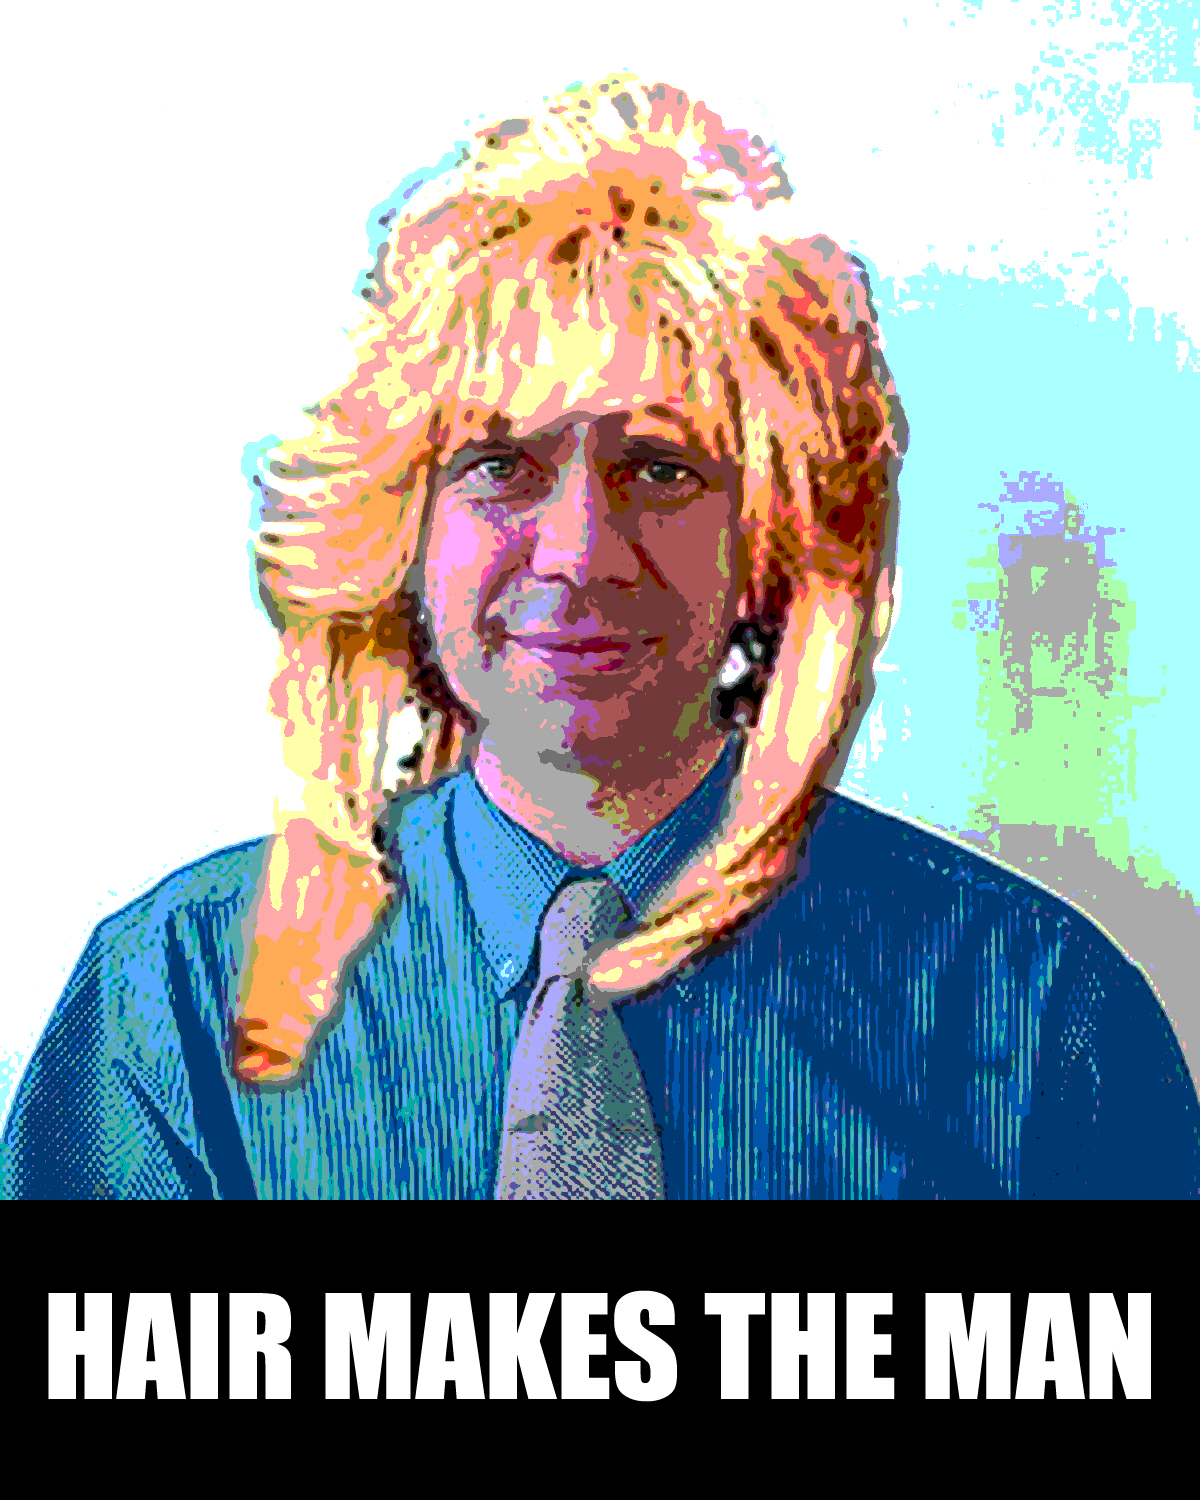 Hair Makes The Man, 2003